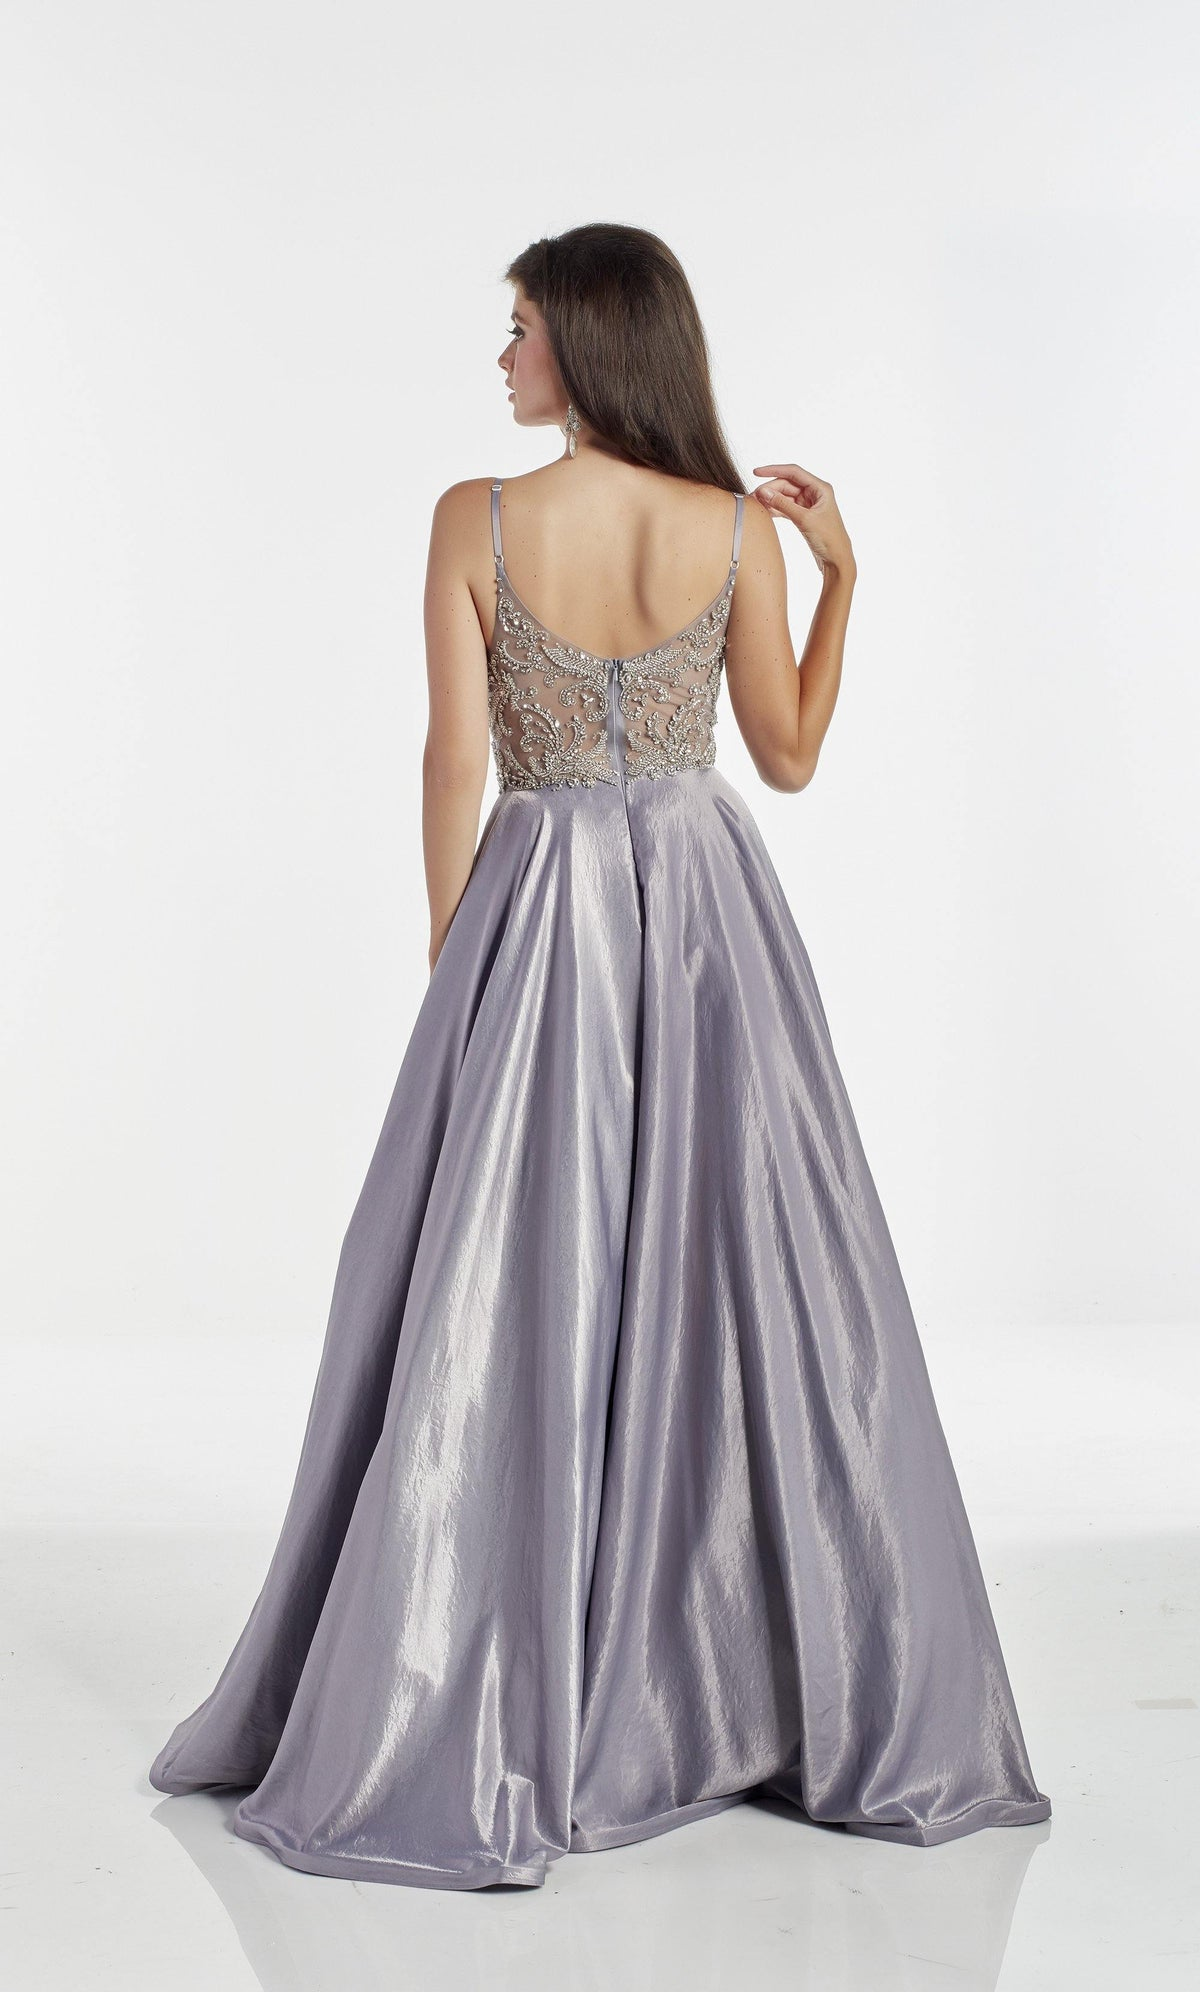 Lilac-Grey flowy prom dress with an enclosed back and embellished bodice